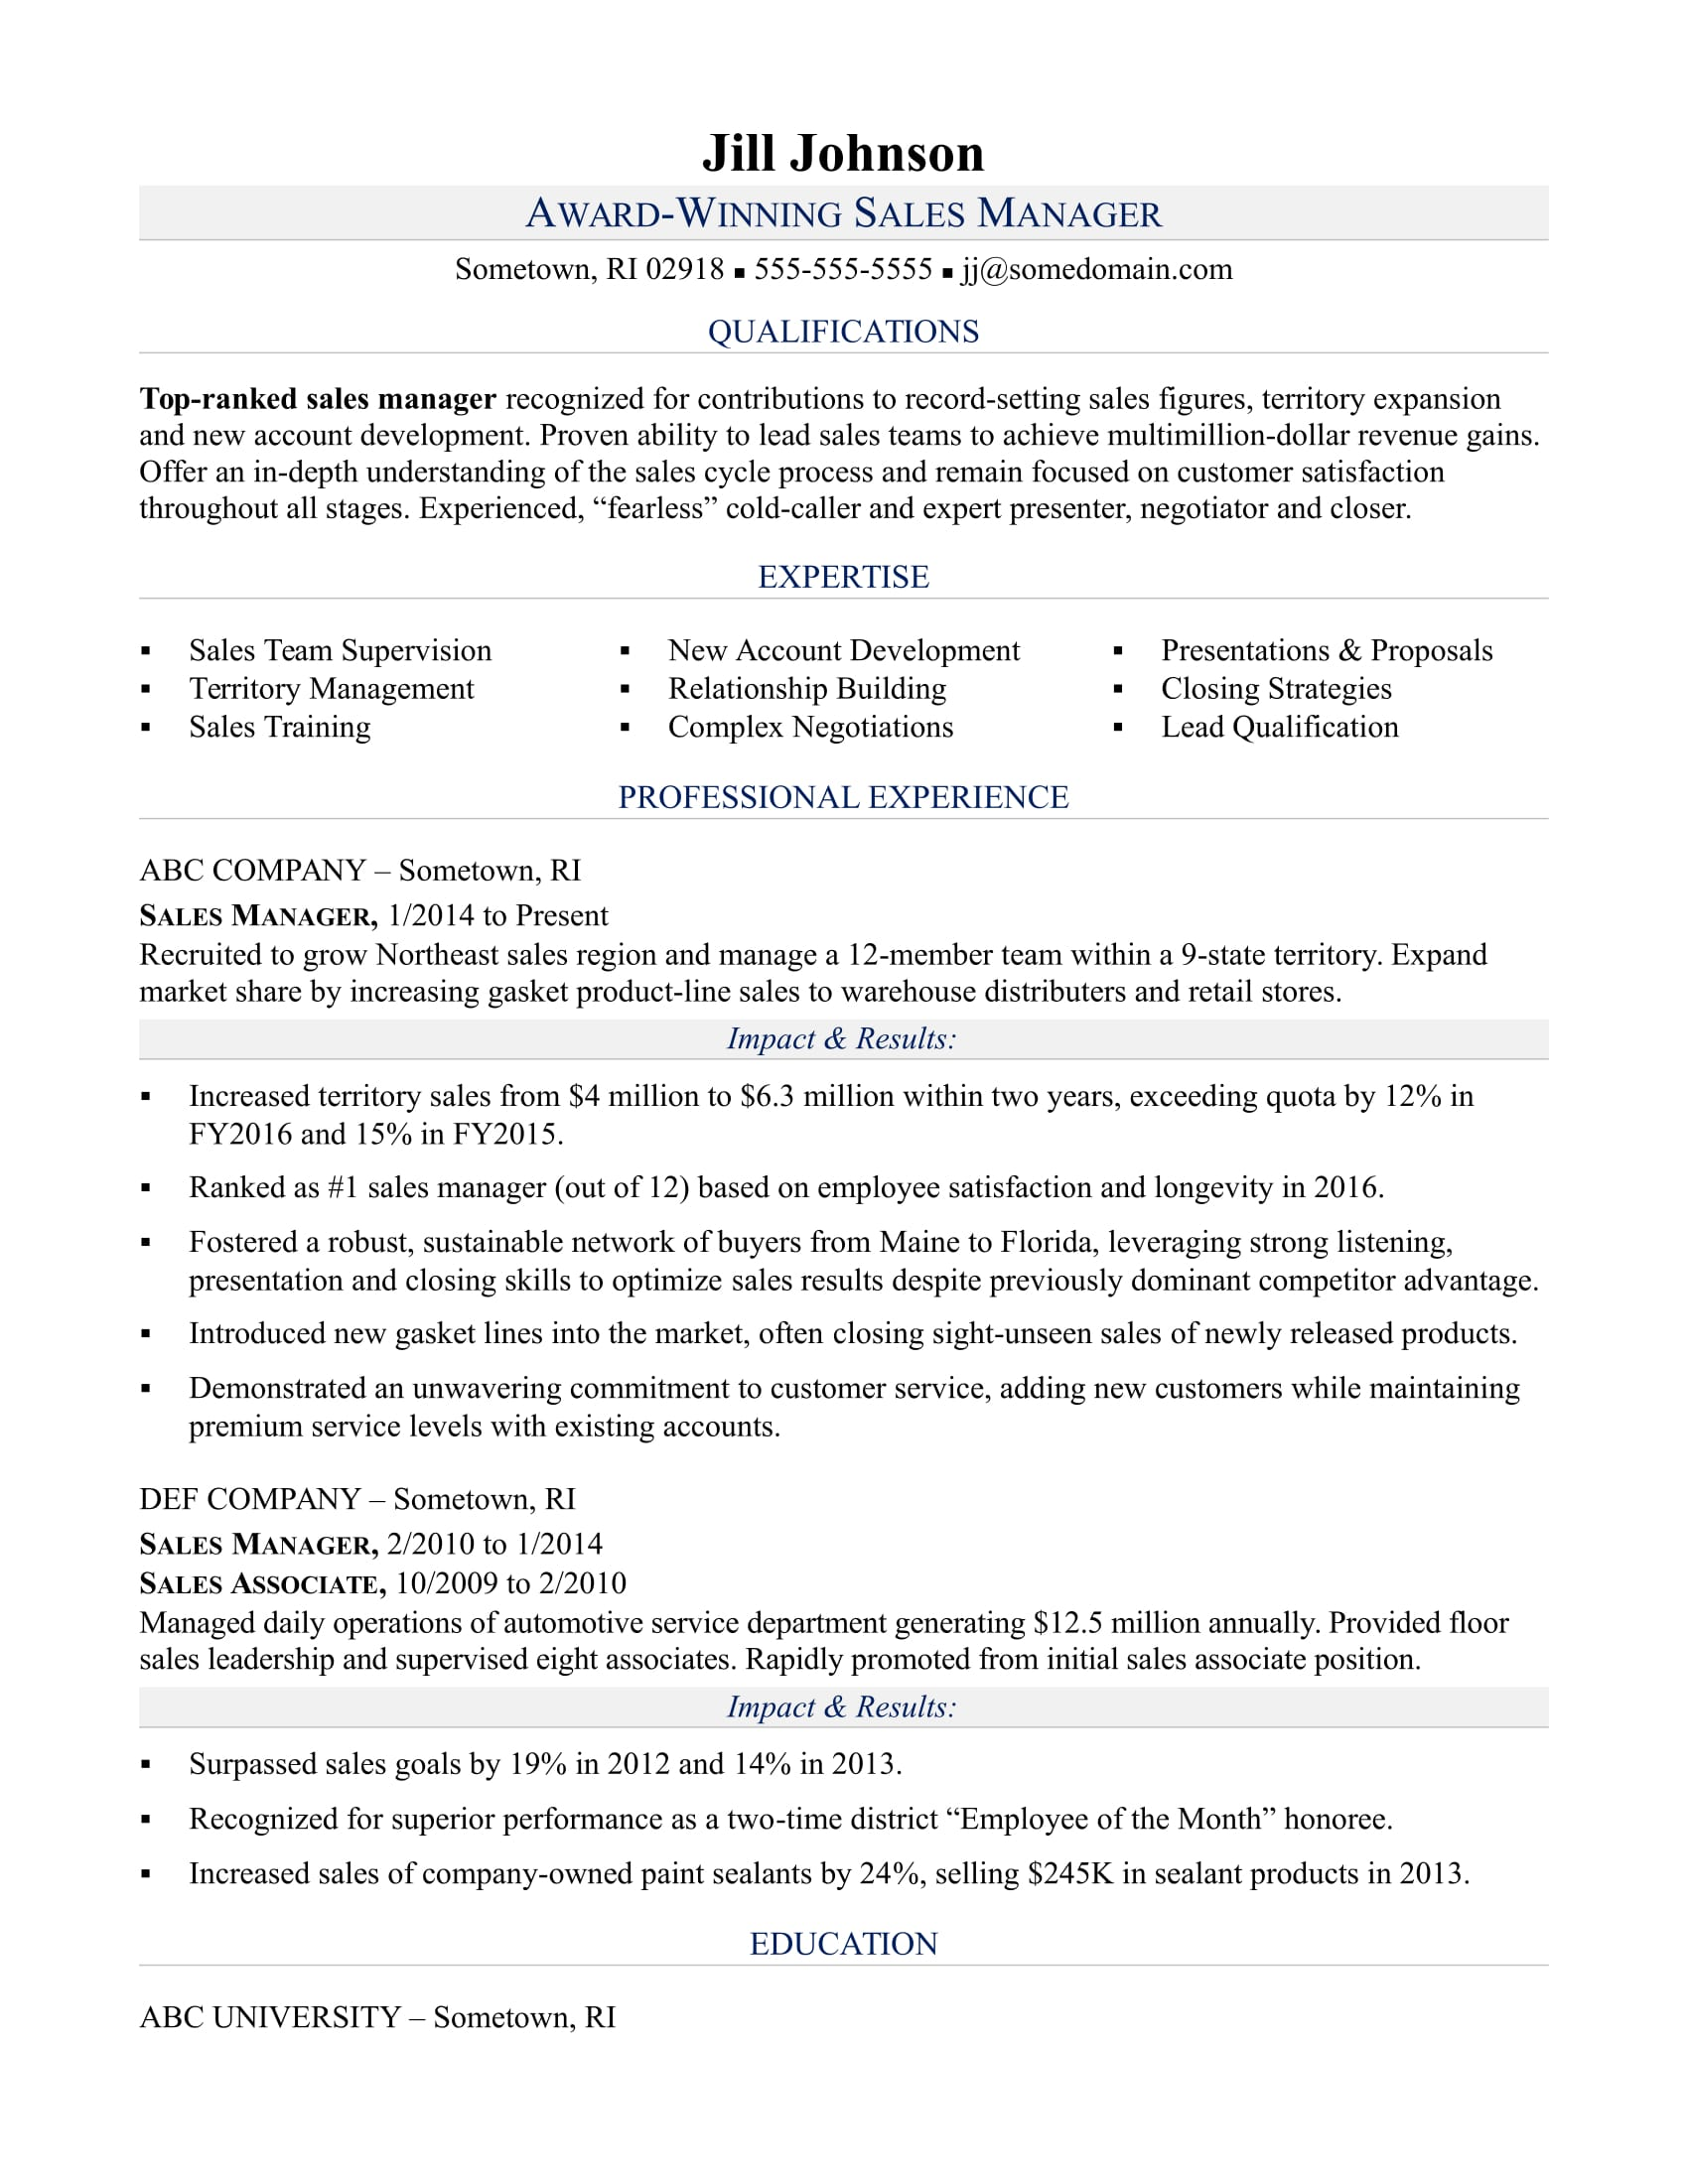 Lunch Supervisor Resume Sample Sales Manager Resume Sample Monster